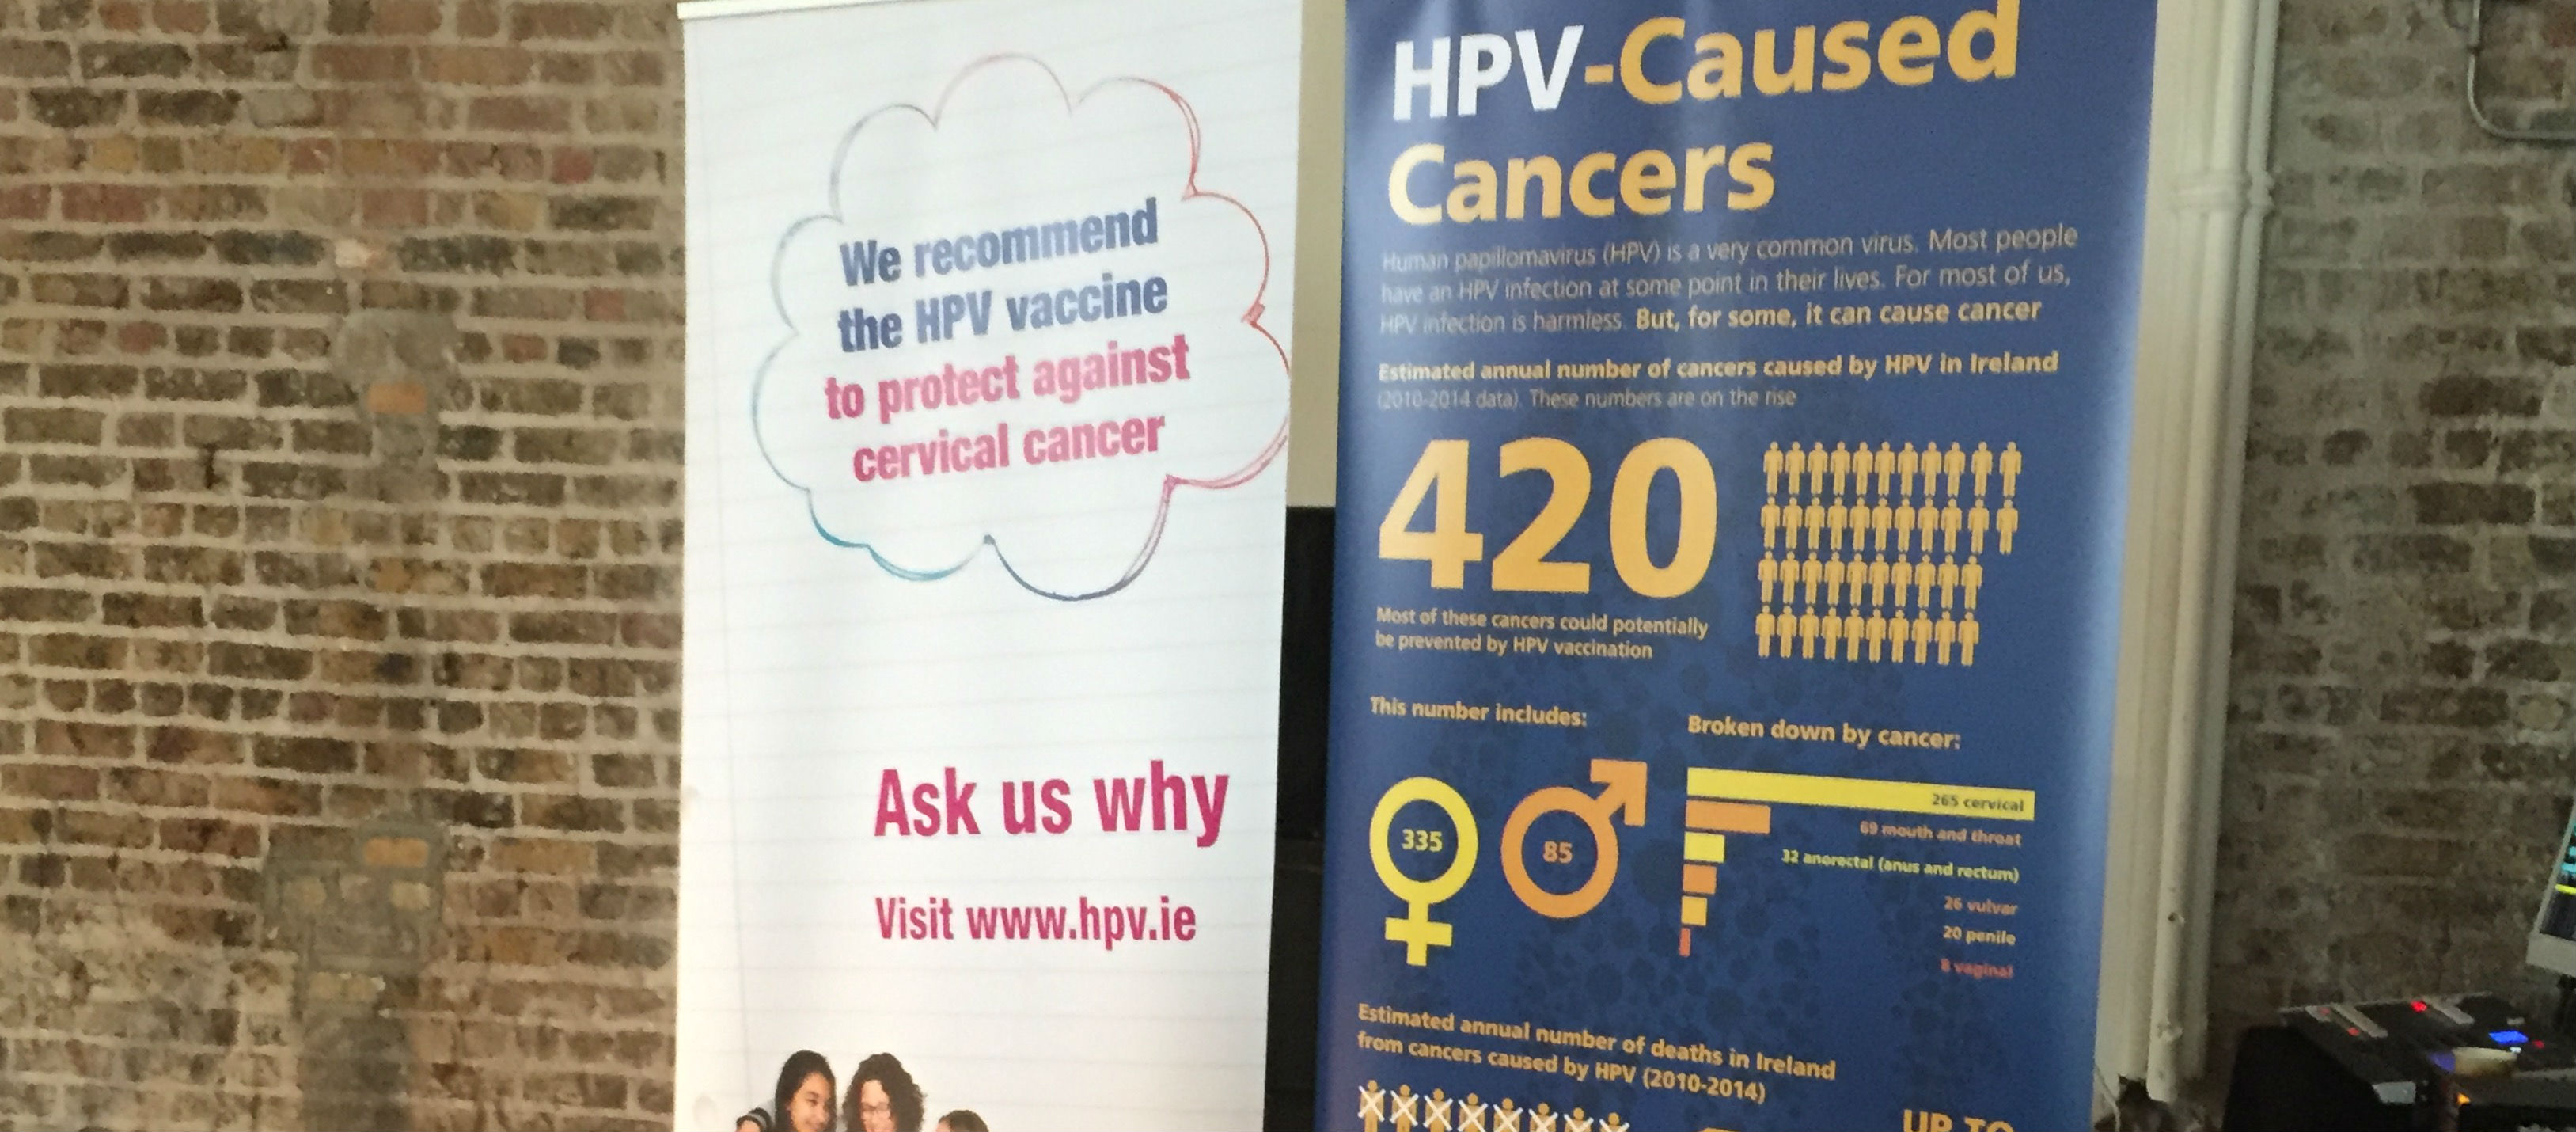 Those Who Don't Take HPV Jab Are Warned